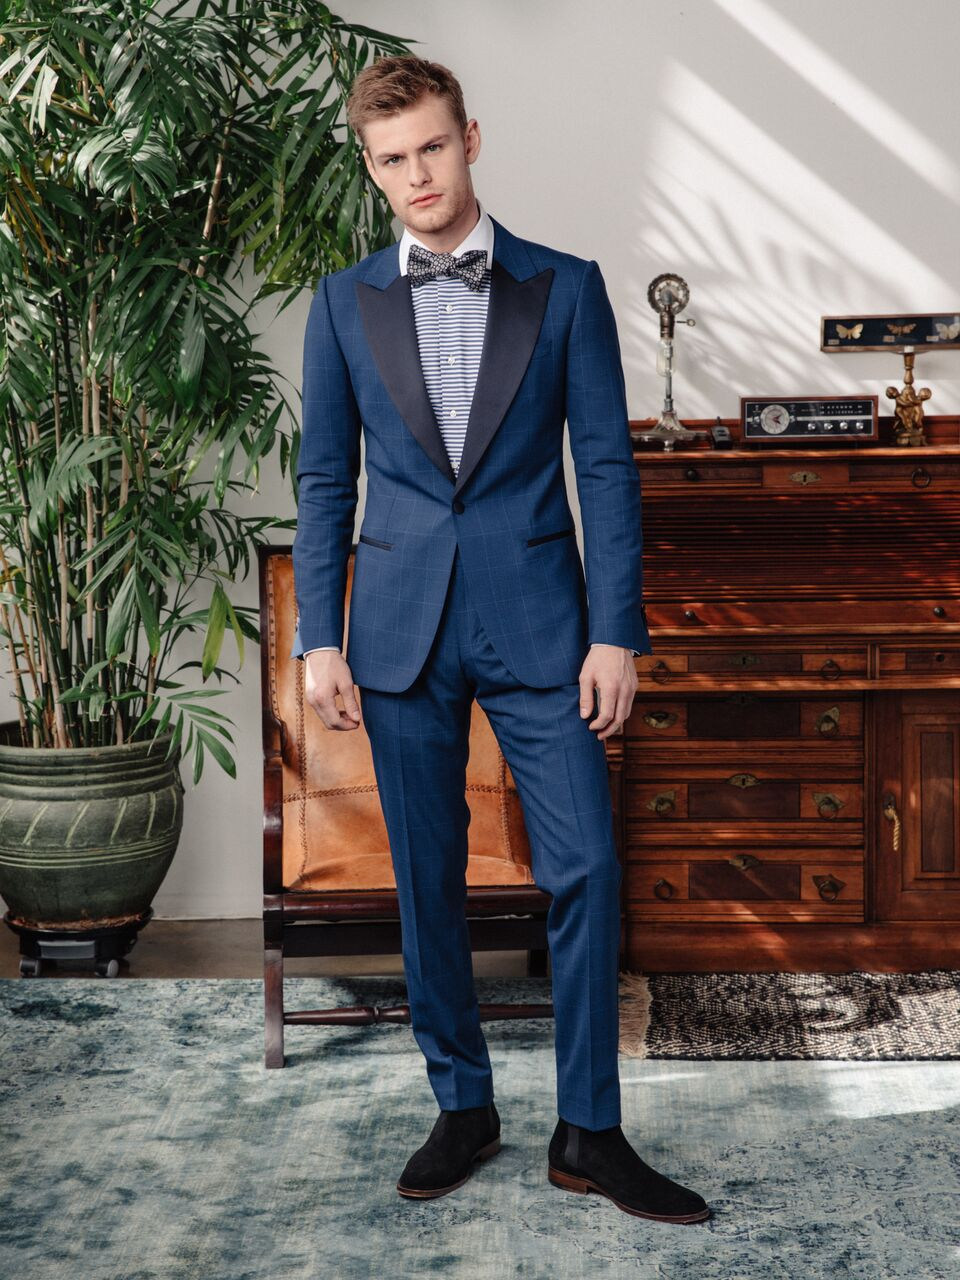 Klein Epstein & Parker  Made to Measure / Knitwear / Ready-to-Wear  West Hollywood, Newport Beach, San Francisco, Fashion Valley (San Diego), Forum Shops (Las Vegas), Portland